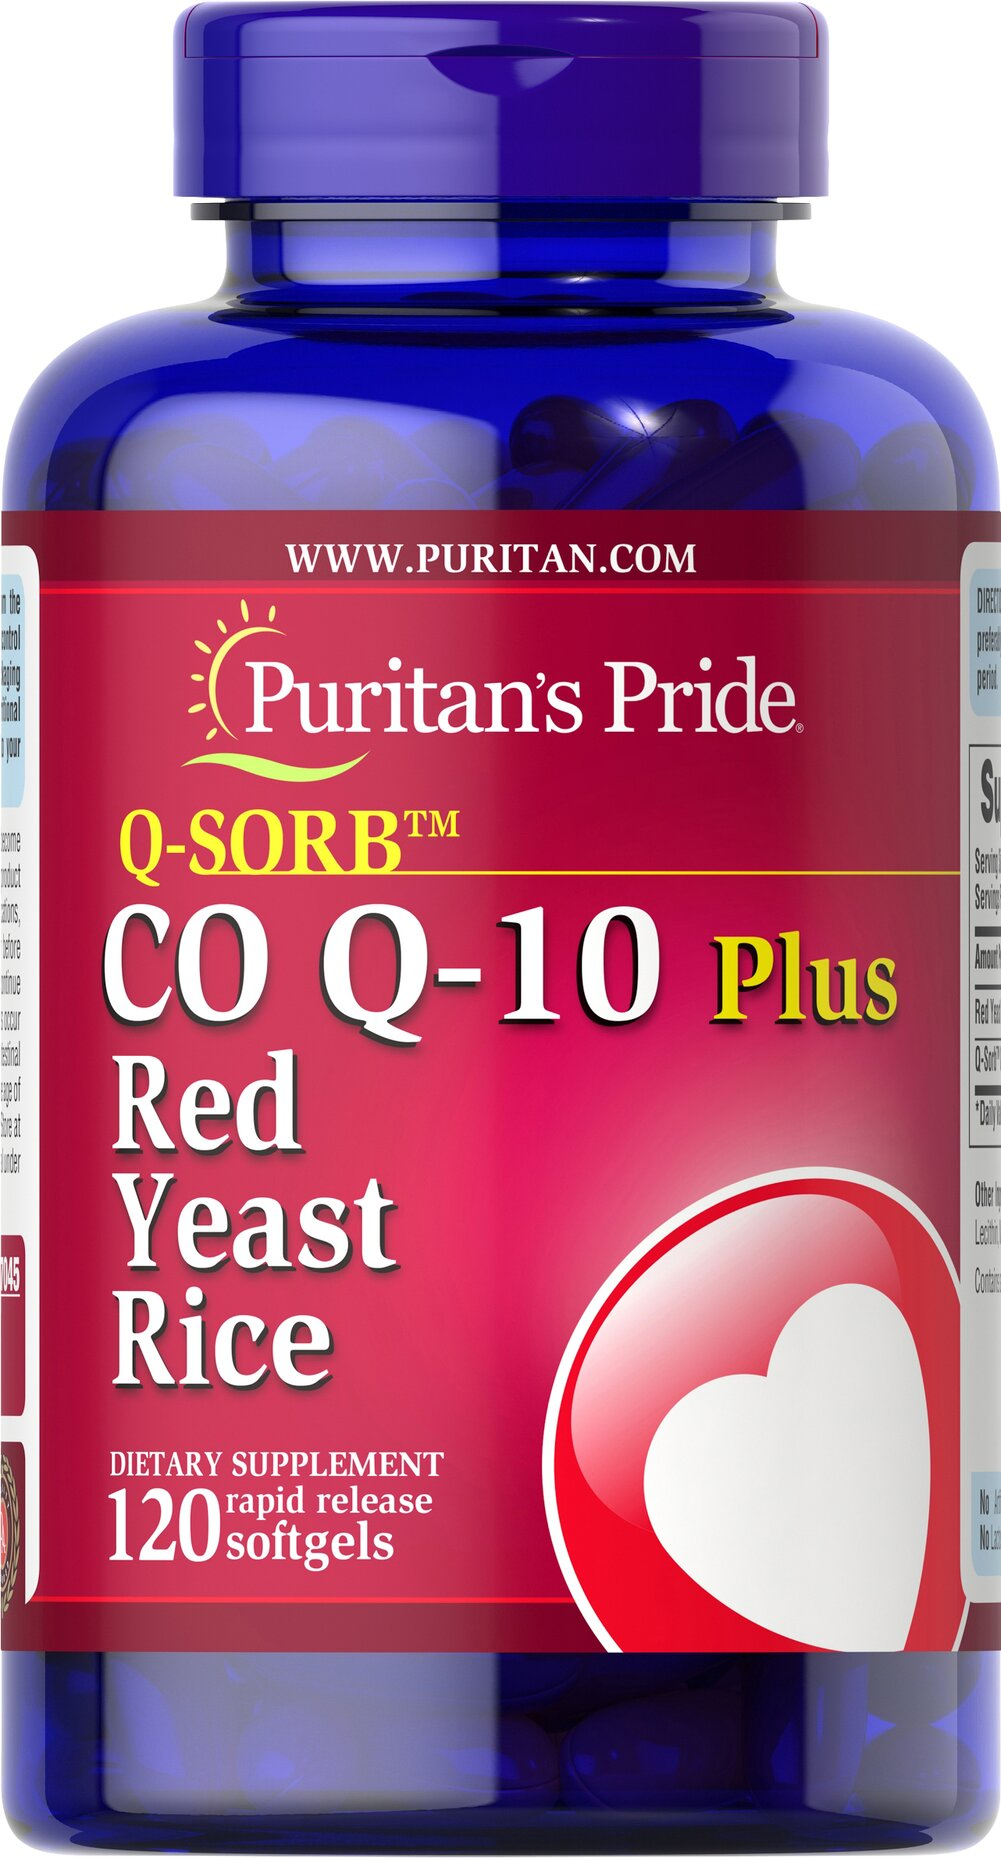 Q-SORB™ Co Q-10 Plus Red Yeast Rice <p>A powerful antioxidant combined with an ingredient whose traditional goodness has been valued for centuries can only mean one thing… <strong>Co Q-10 Plus Red Yeast Rice.</strong></p><p>Red Yeast Rice has been a part of the traditional Chinese diet for centuries, and Coenzyme Q-10 promotes energy production and is an important contributor to antioxidant and heart health.** Only two softgels a day brings you these many benefits.&